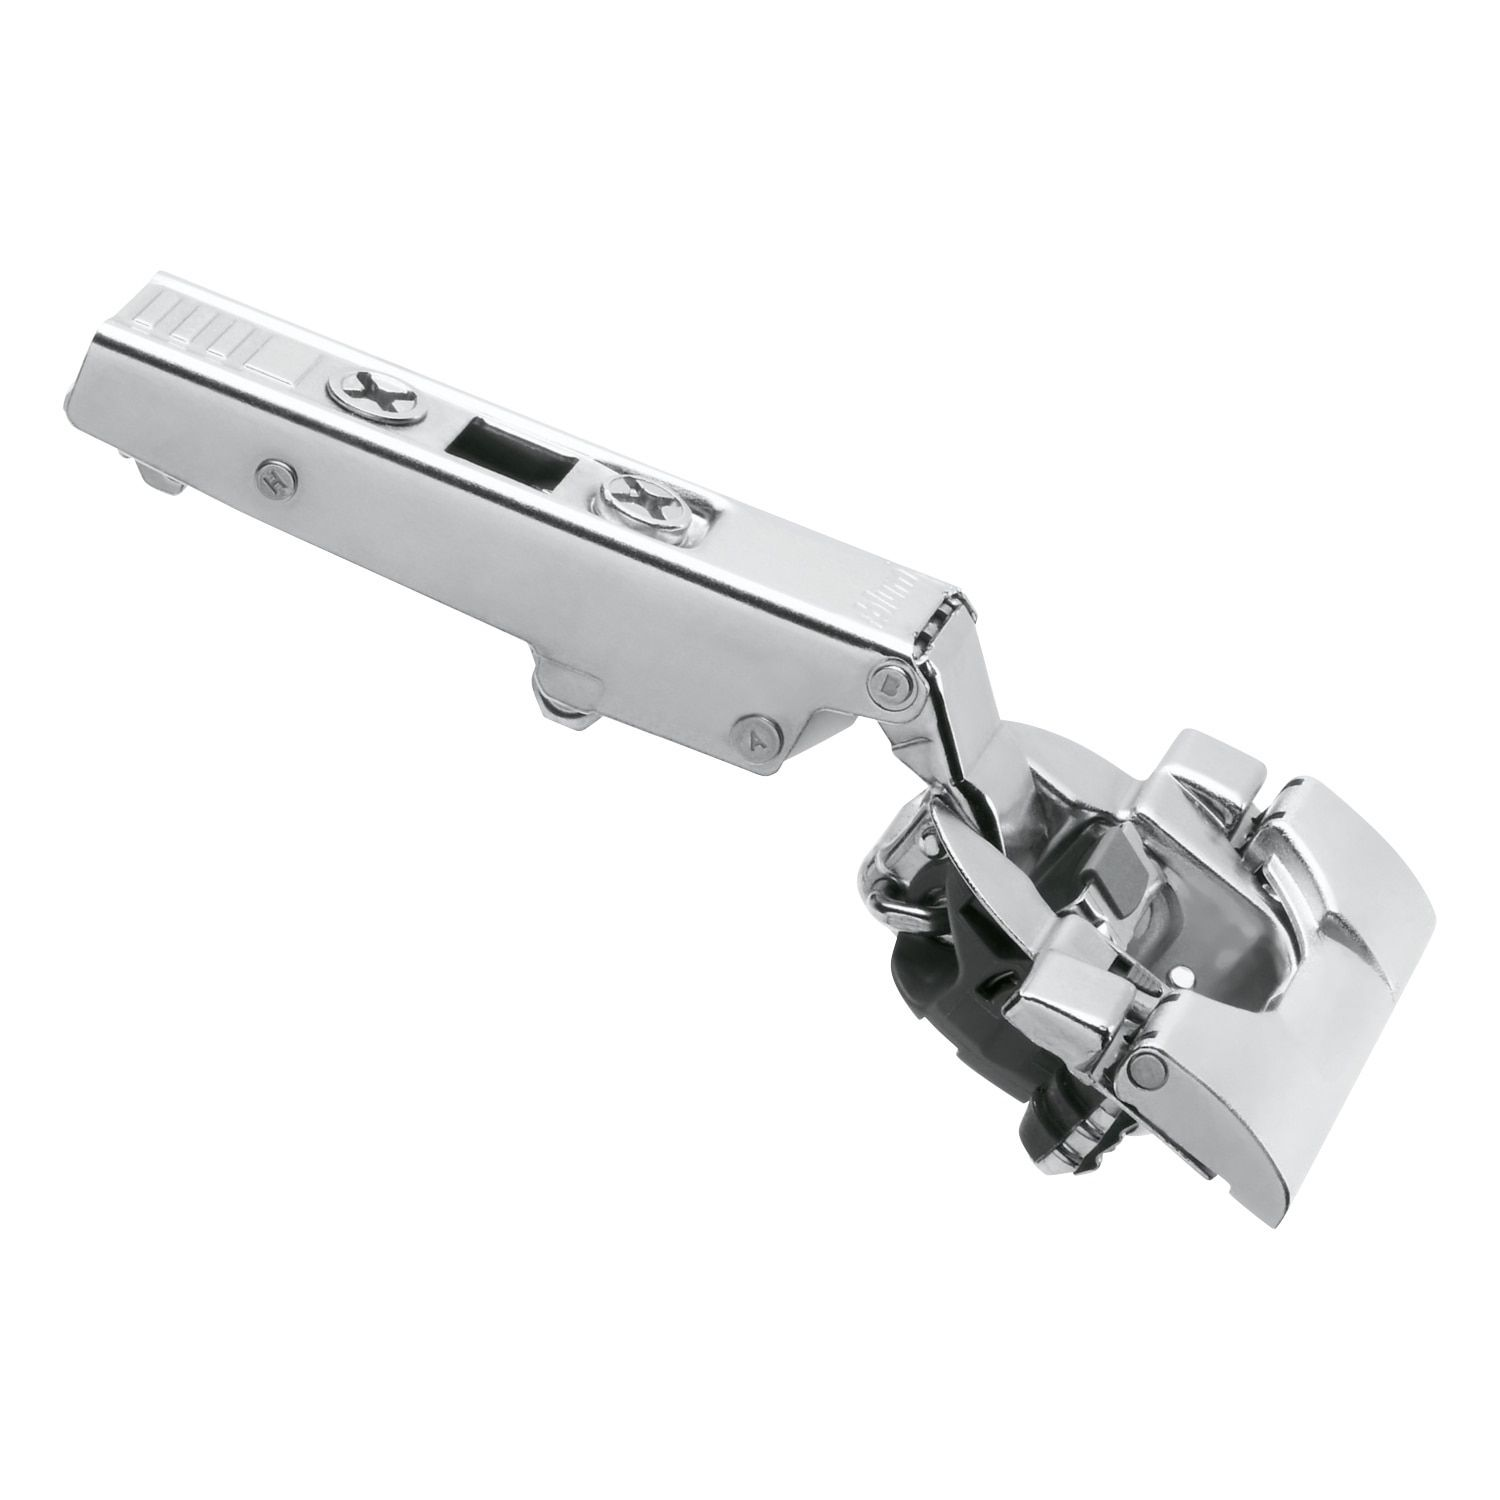 Blum 110 Degree Straight Arm Clip Top Blumotion Overlay Inserta Soft Close Hinge Hinges For Cabinets Overlays Overlay Hinges